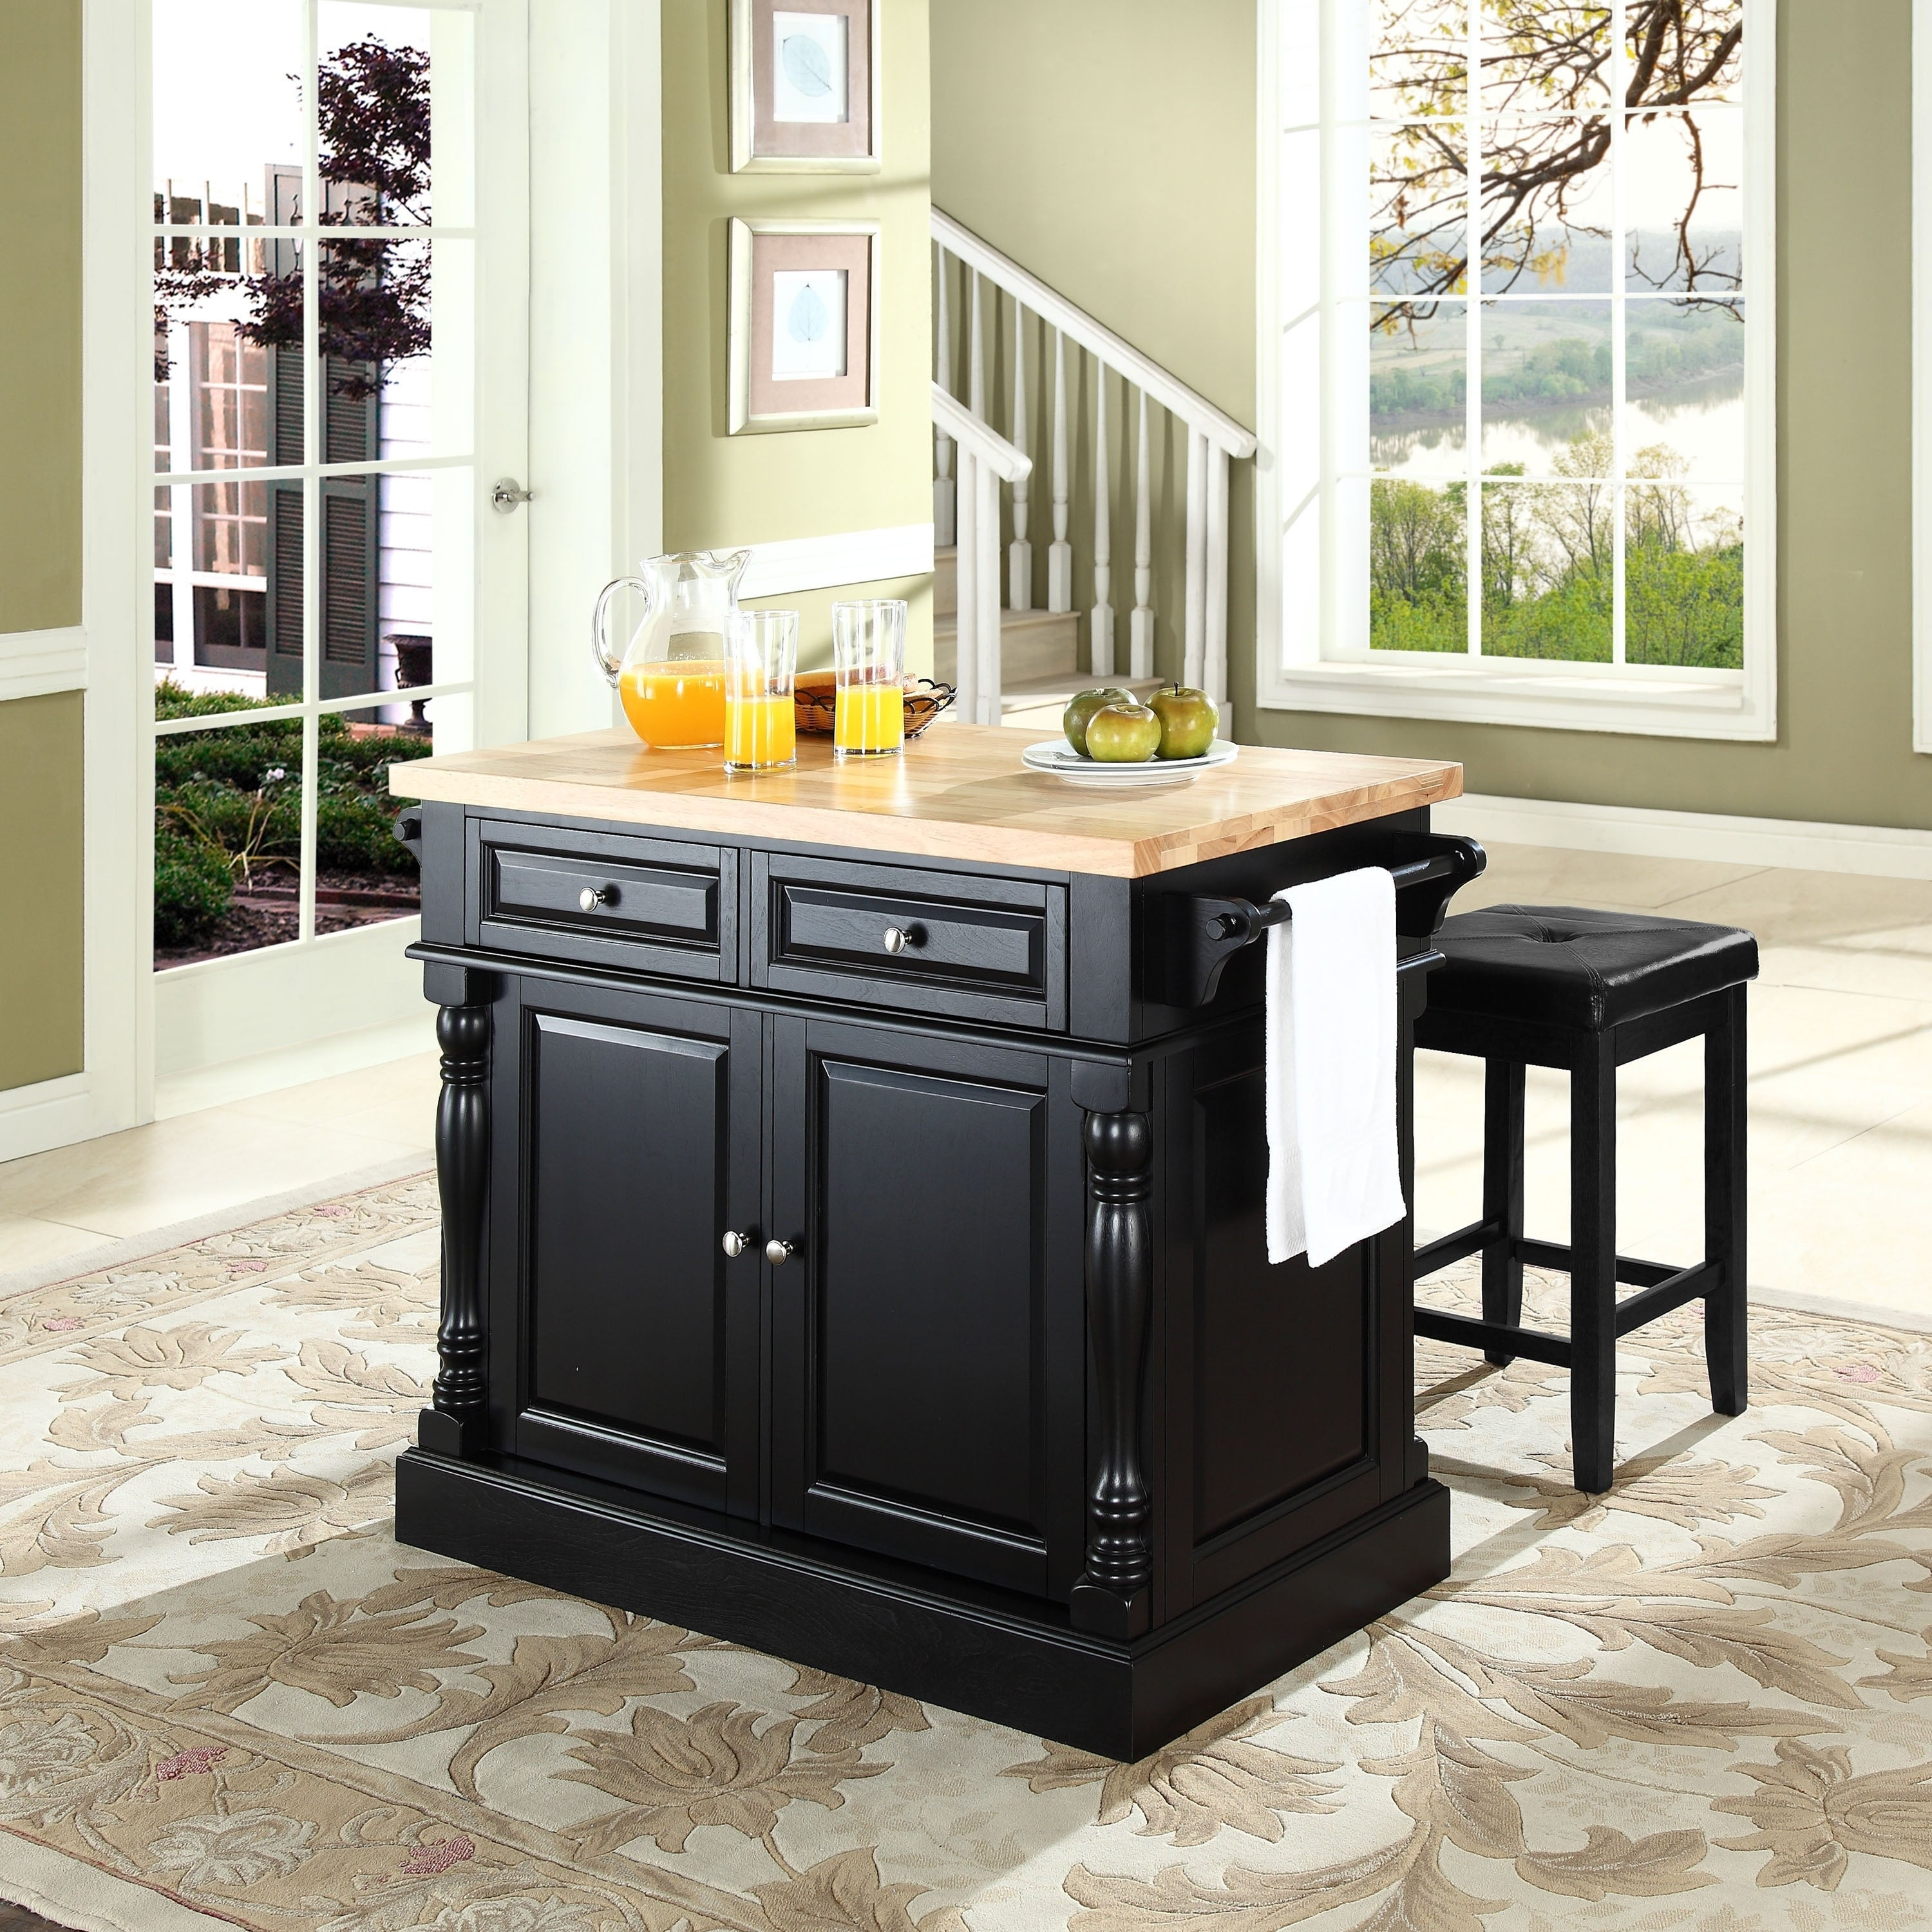 Oxford Butcher Block Top Kitchen Island in Black Finish with Stools